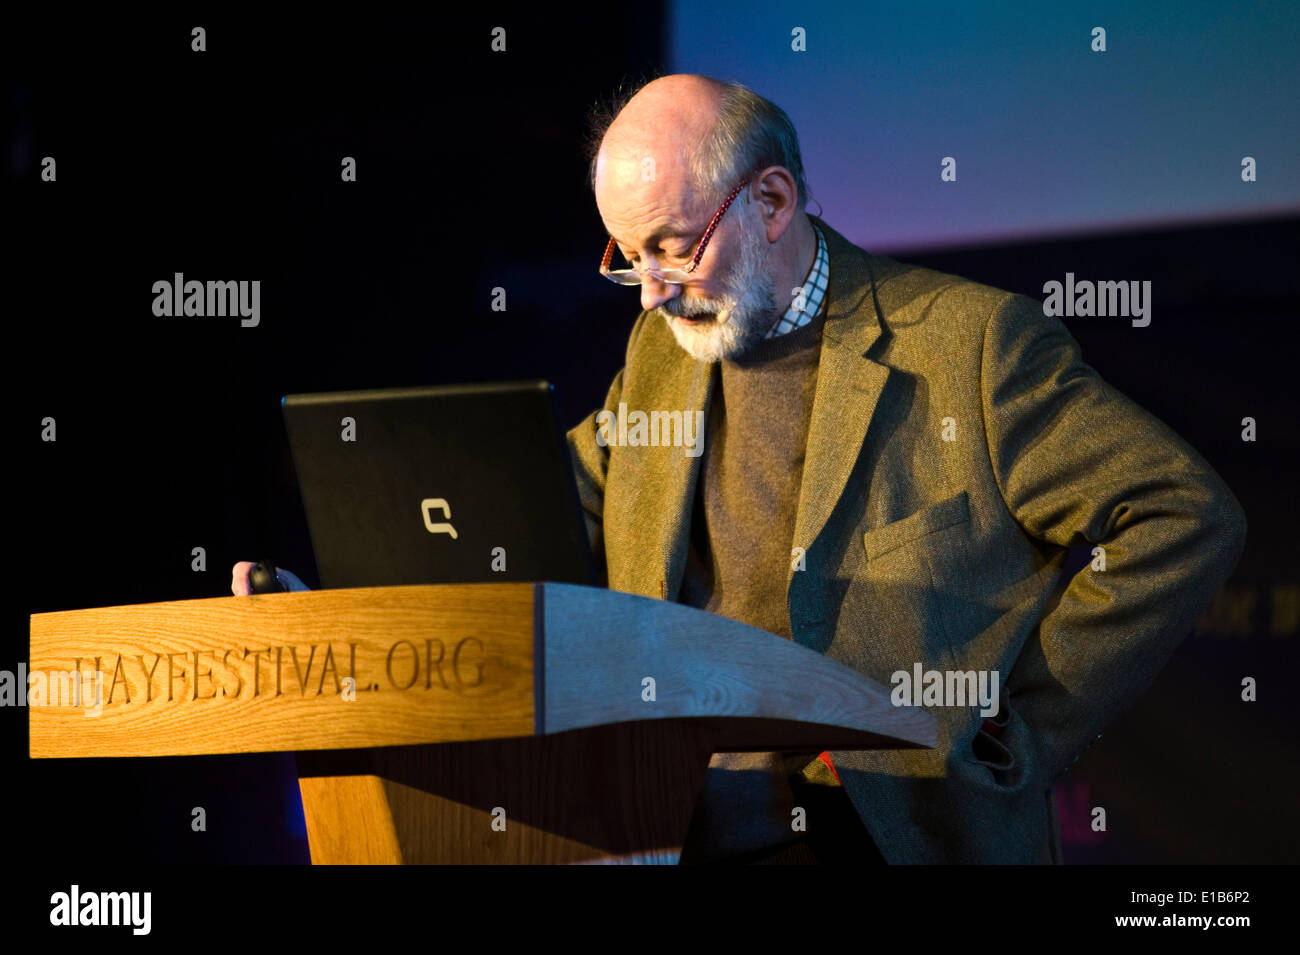 Raymond Tallis philosopher talking about 'Tetchy Interludes' from his latest book 'Epithemean Imaginings' at Hay Festival 2014. - Stock Image